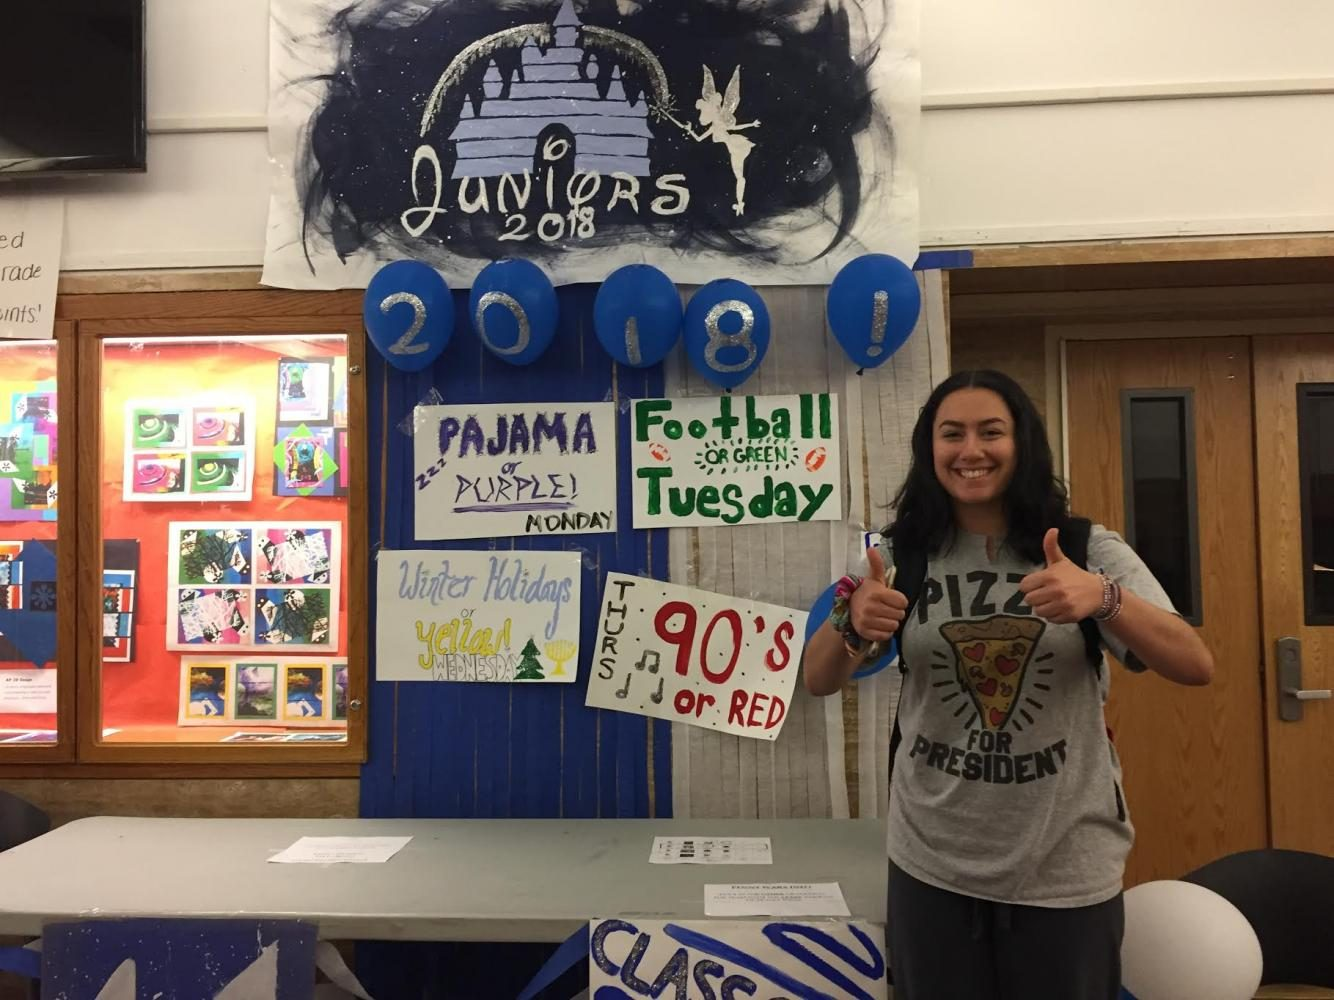 Junior+Lauren+Seltzer+poses+in+front+of+the+junior+table+for+the+first+day+of+Spirit+Week.+On+Monday%2C+students+wore+pajamas+to+school+to+earn+points+for+their+grade.